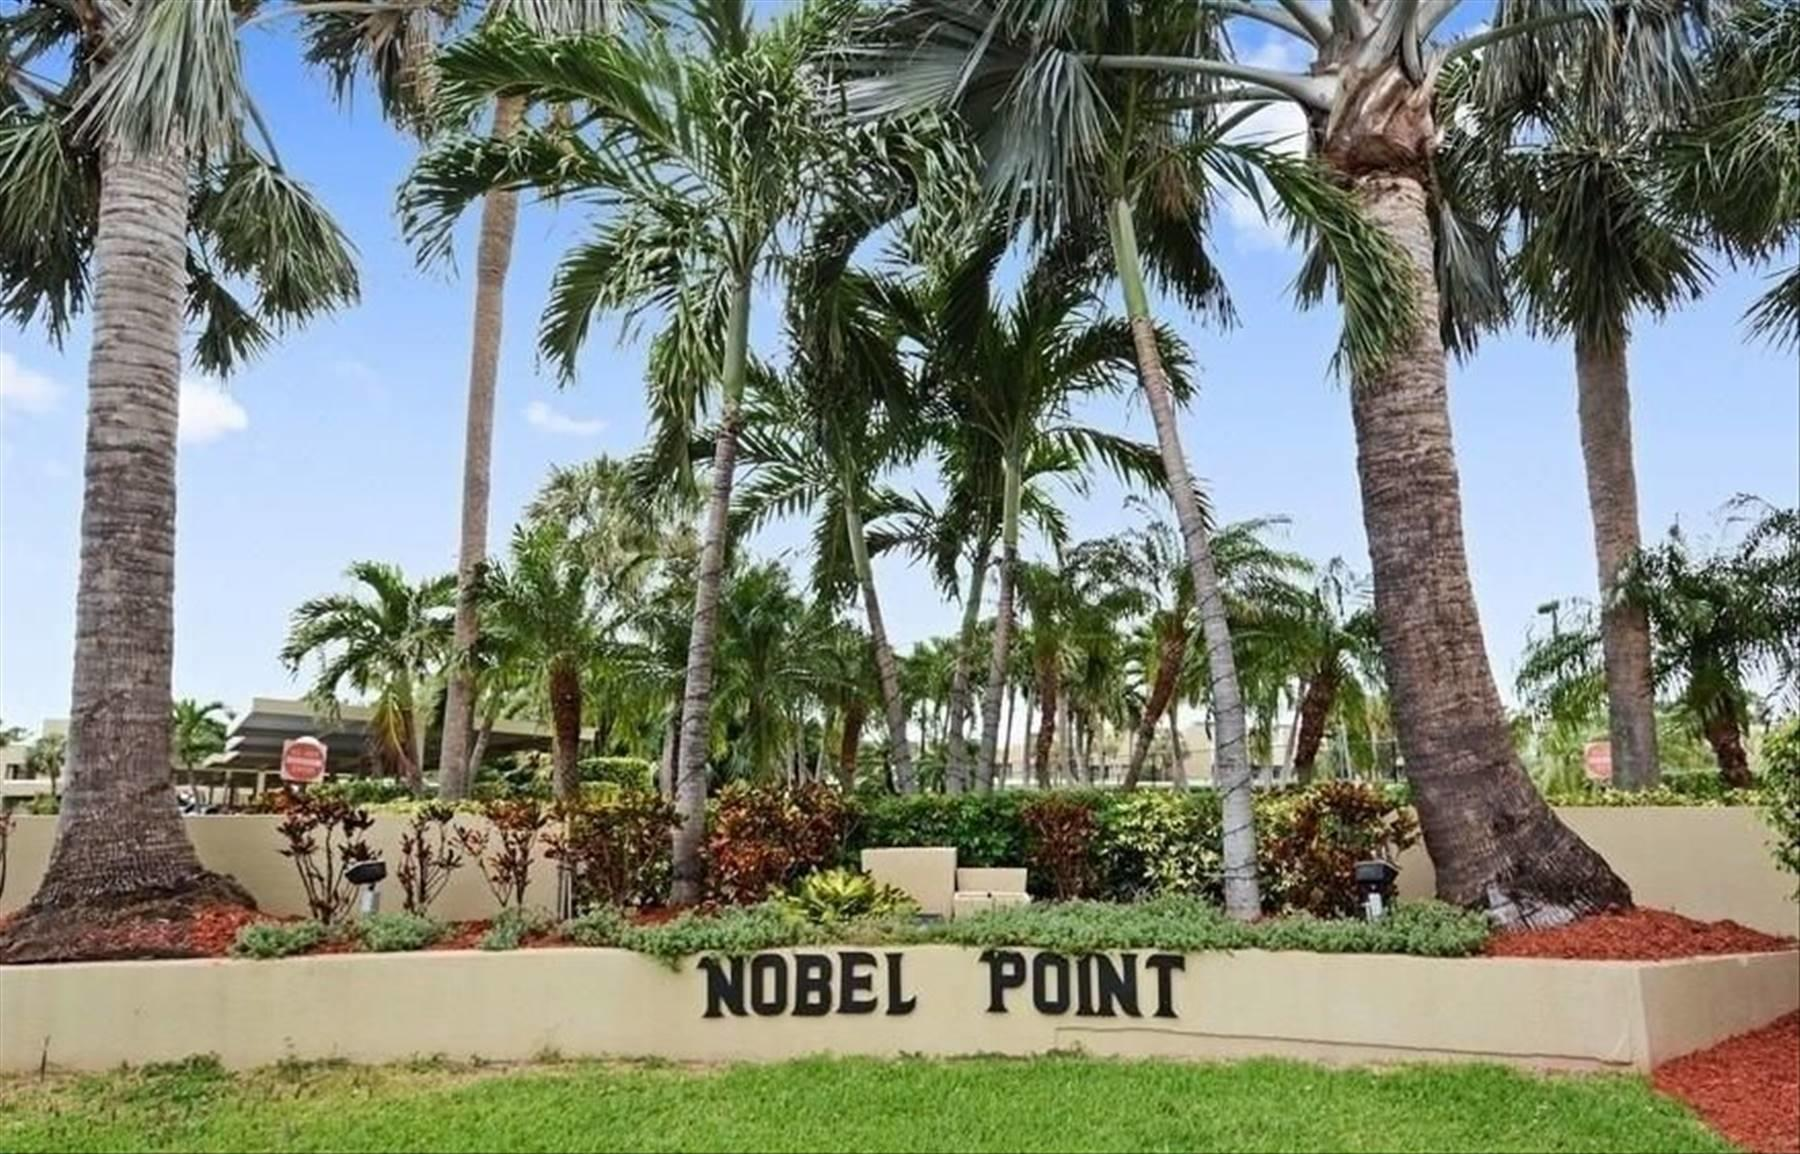 Home for sale in Nobel Point Pompano Beach Florida